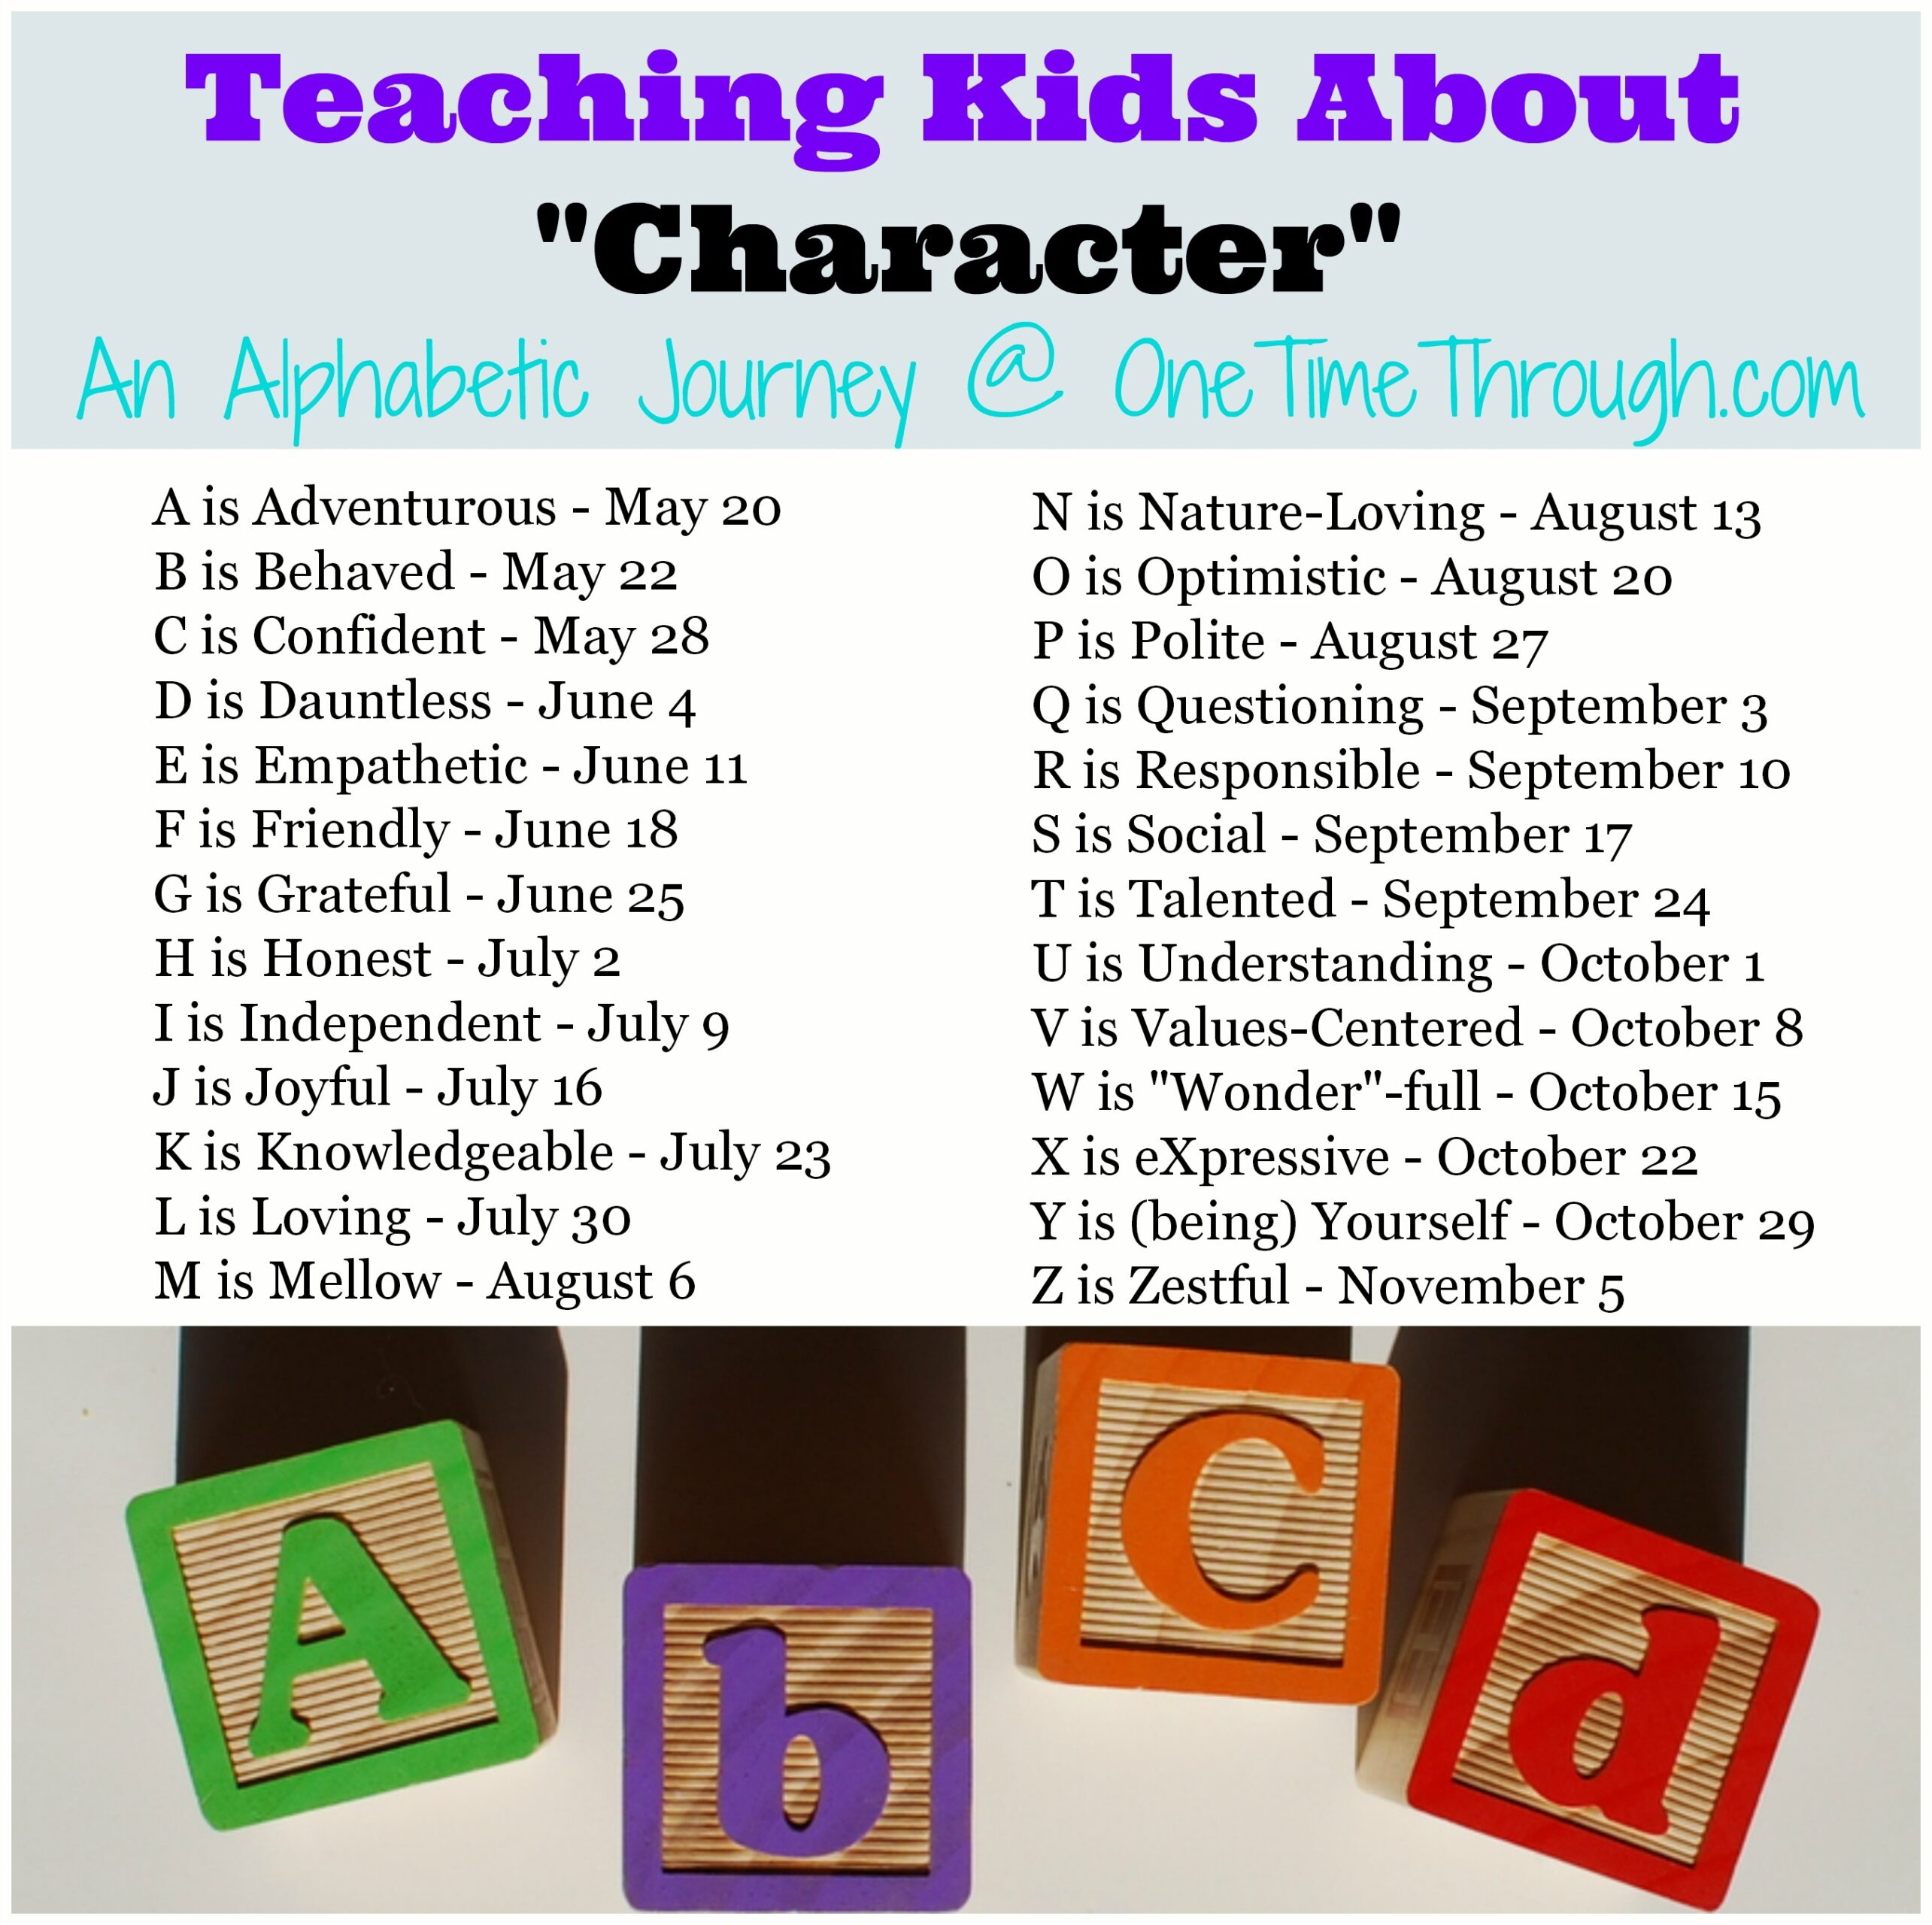 List of alphabetic journey topics regarding teaching children character